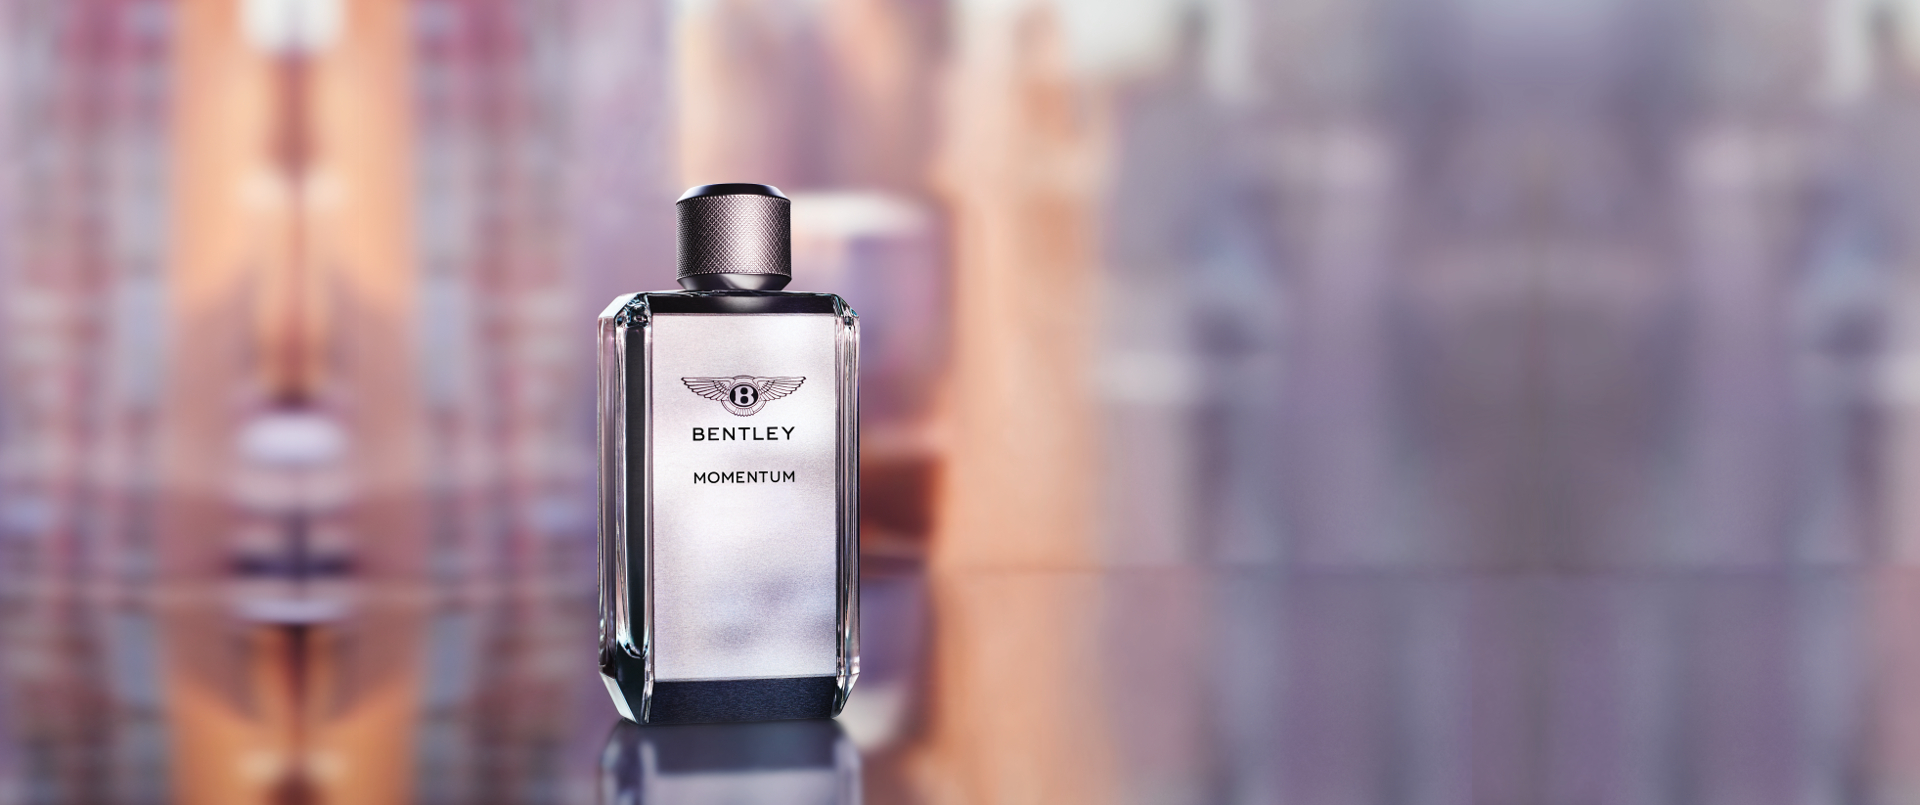 Bentley Fragrances | Bentley Momentum